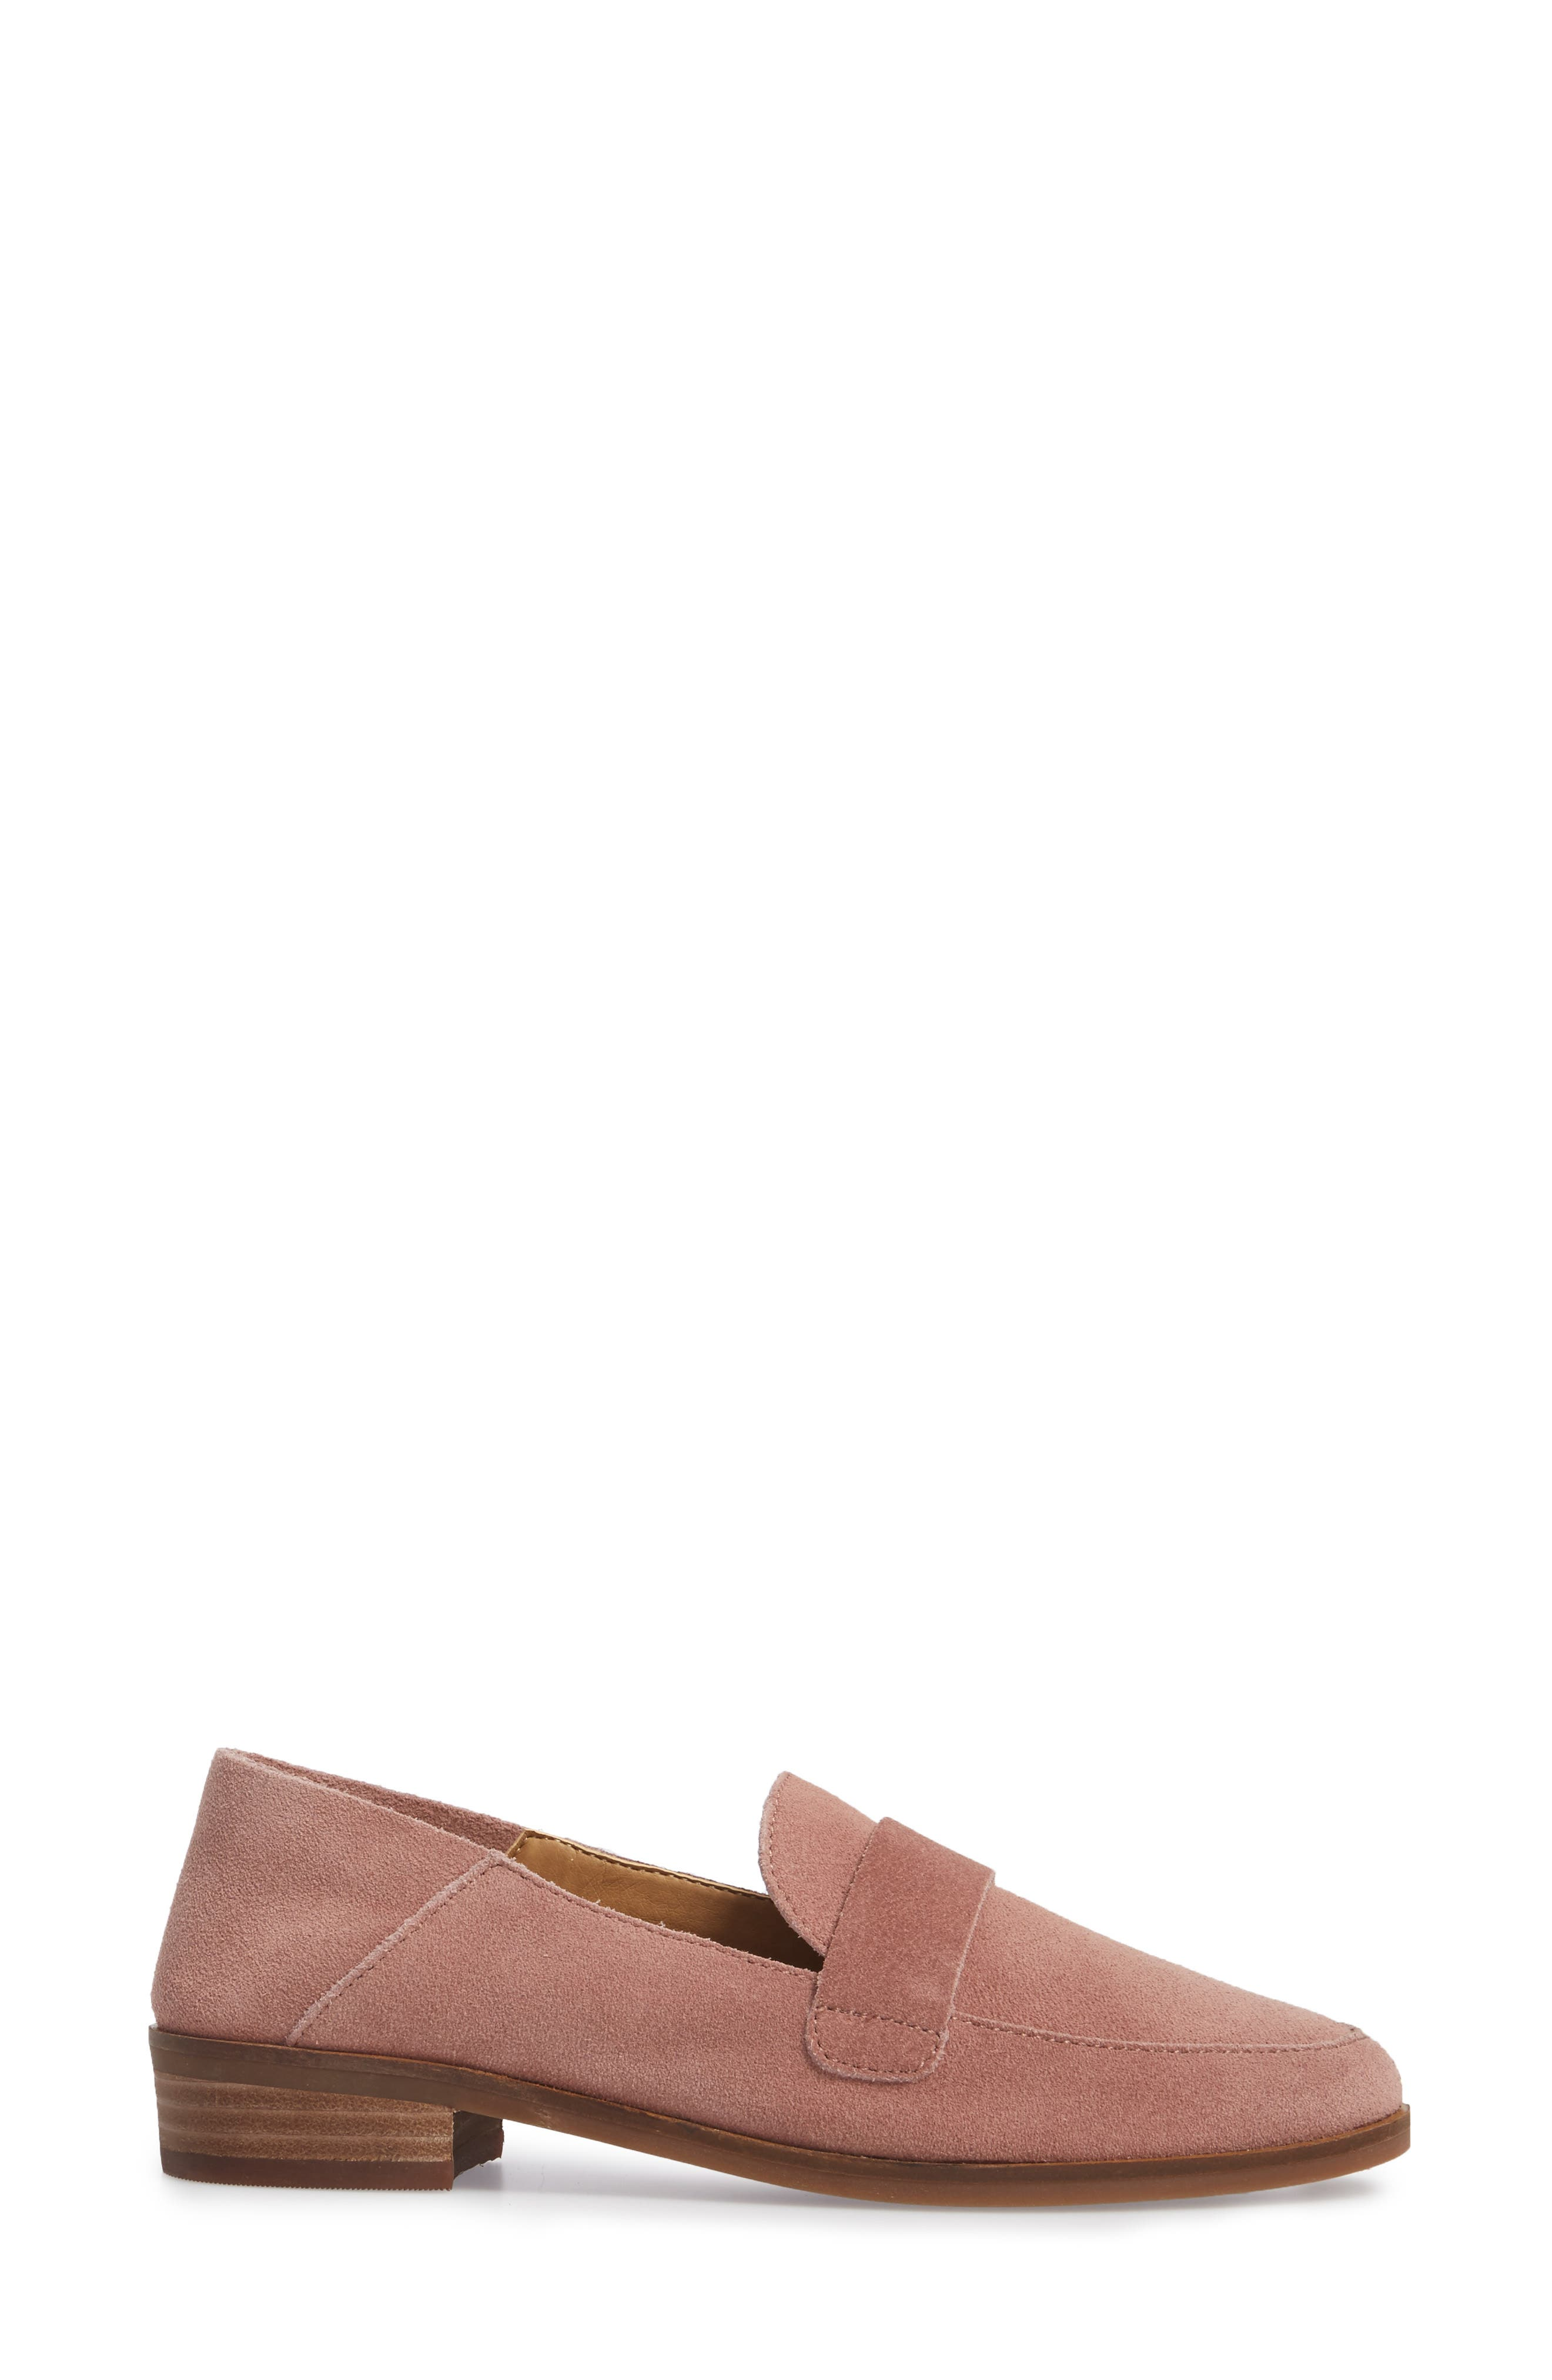 Chennie Loafer,                             Alternate thumbnail 12, color,